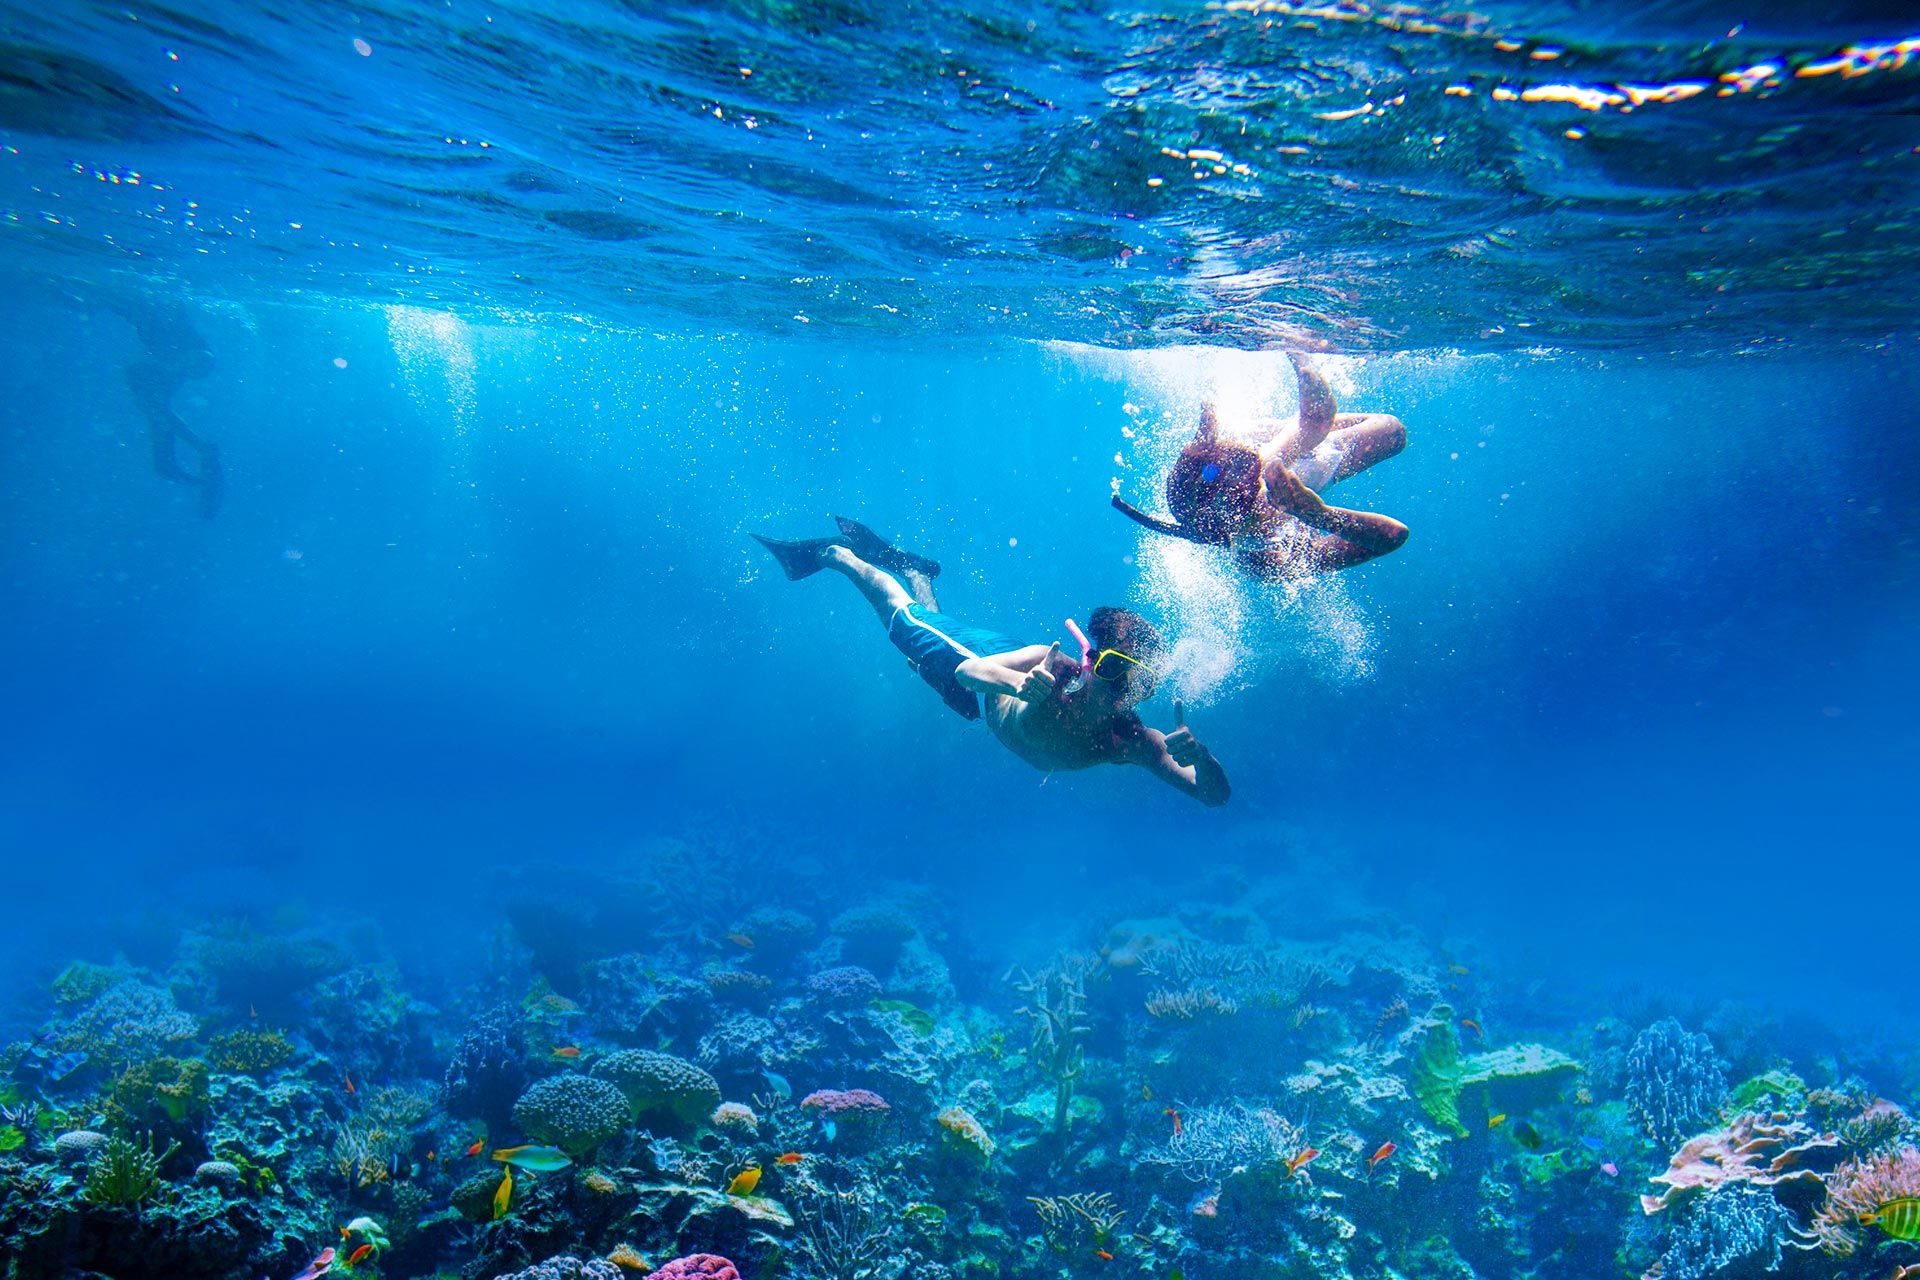 Top 10 Snorkeling Spots in Turks and Caicos